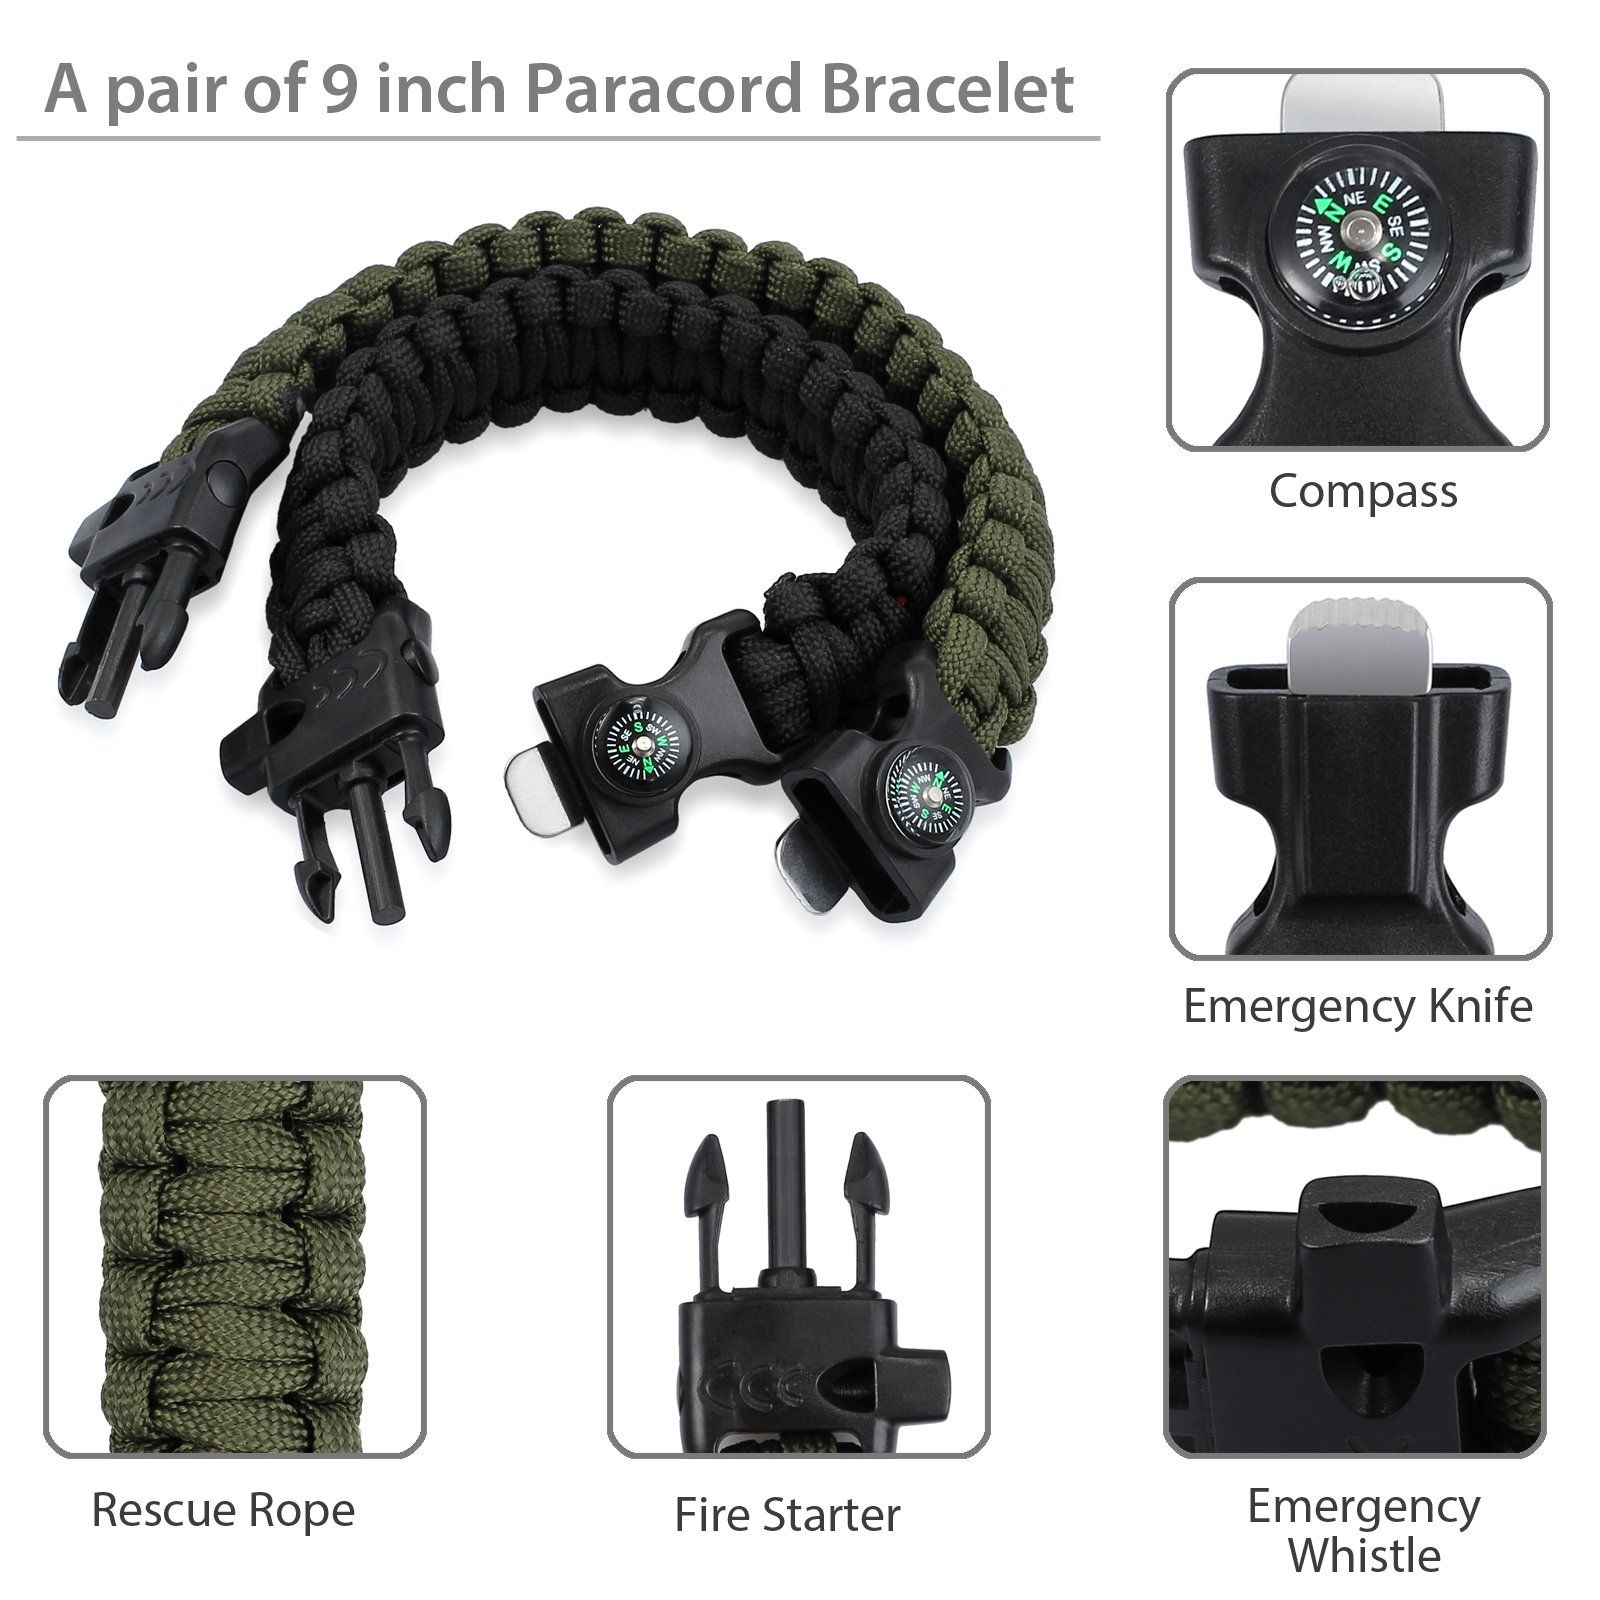 Survival Chain Saw Pocket Gears Hand ChainSaw Emergency Camping Kits W